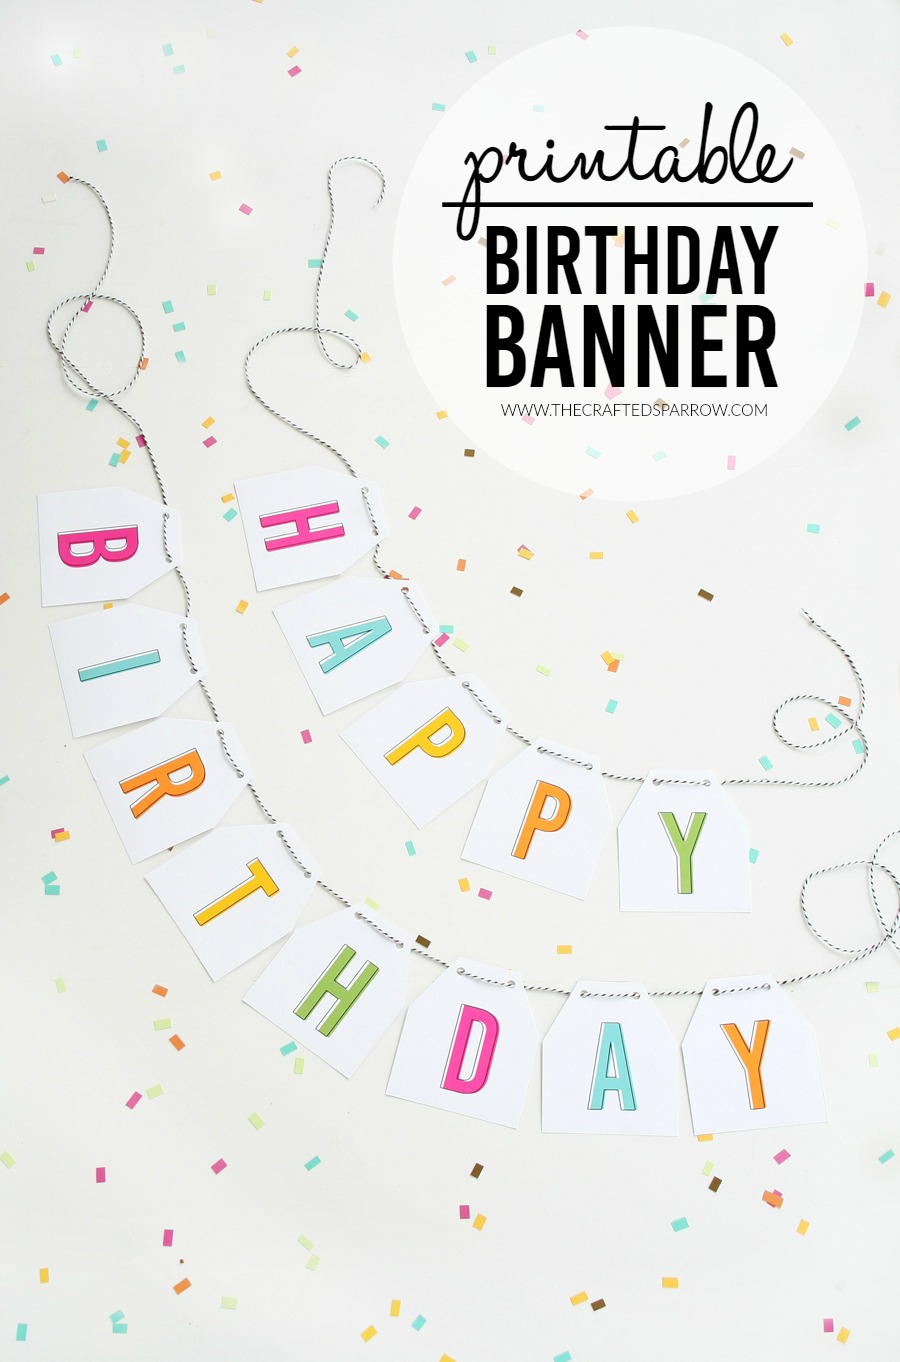 photo relating to Printable Happy Birthday Banner referred to as Cost-free Printable Birthday Banner